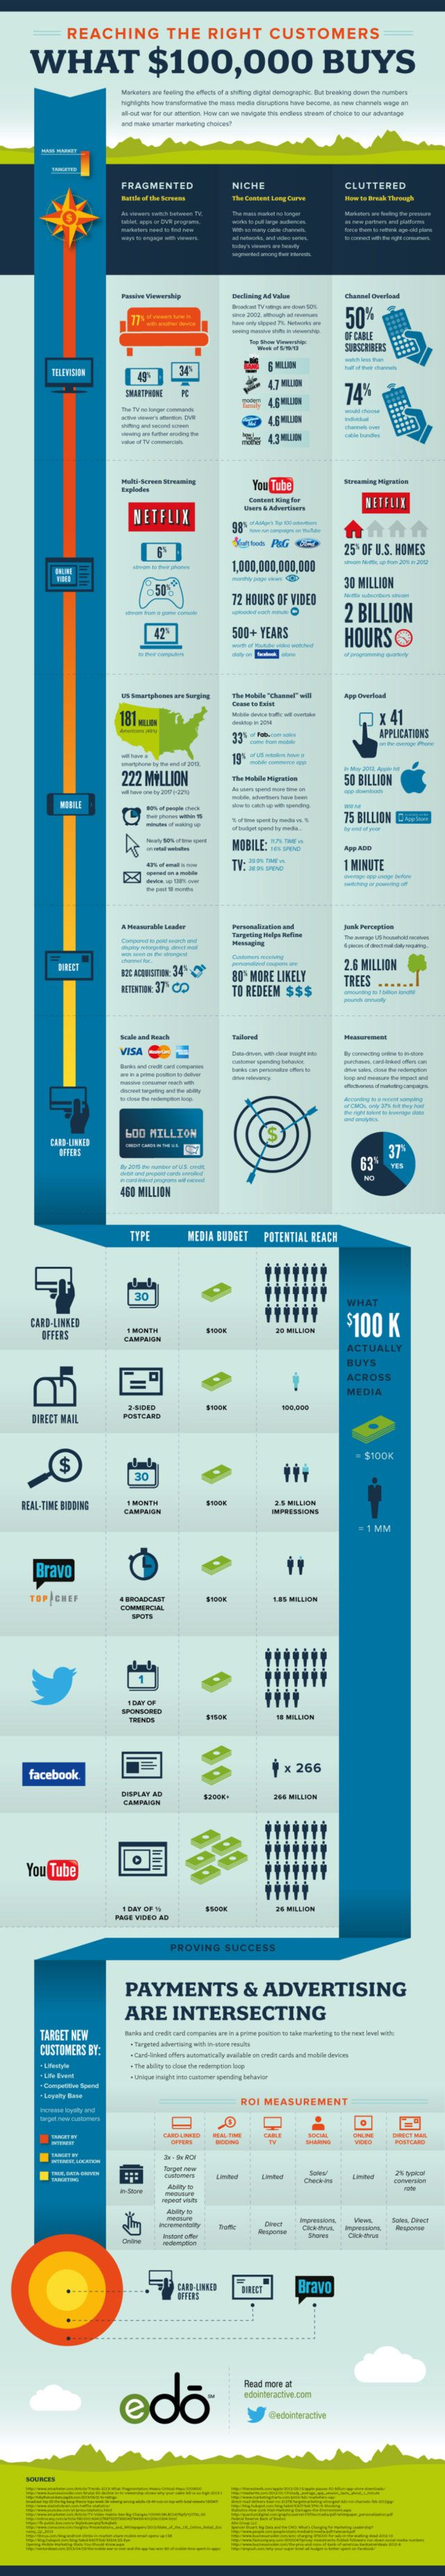 edo-media-landscape-infographic-v7